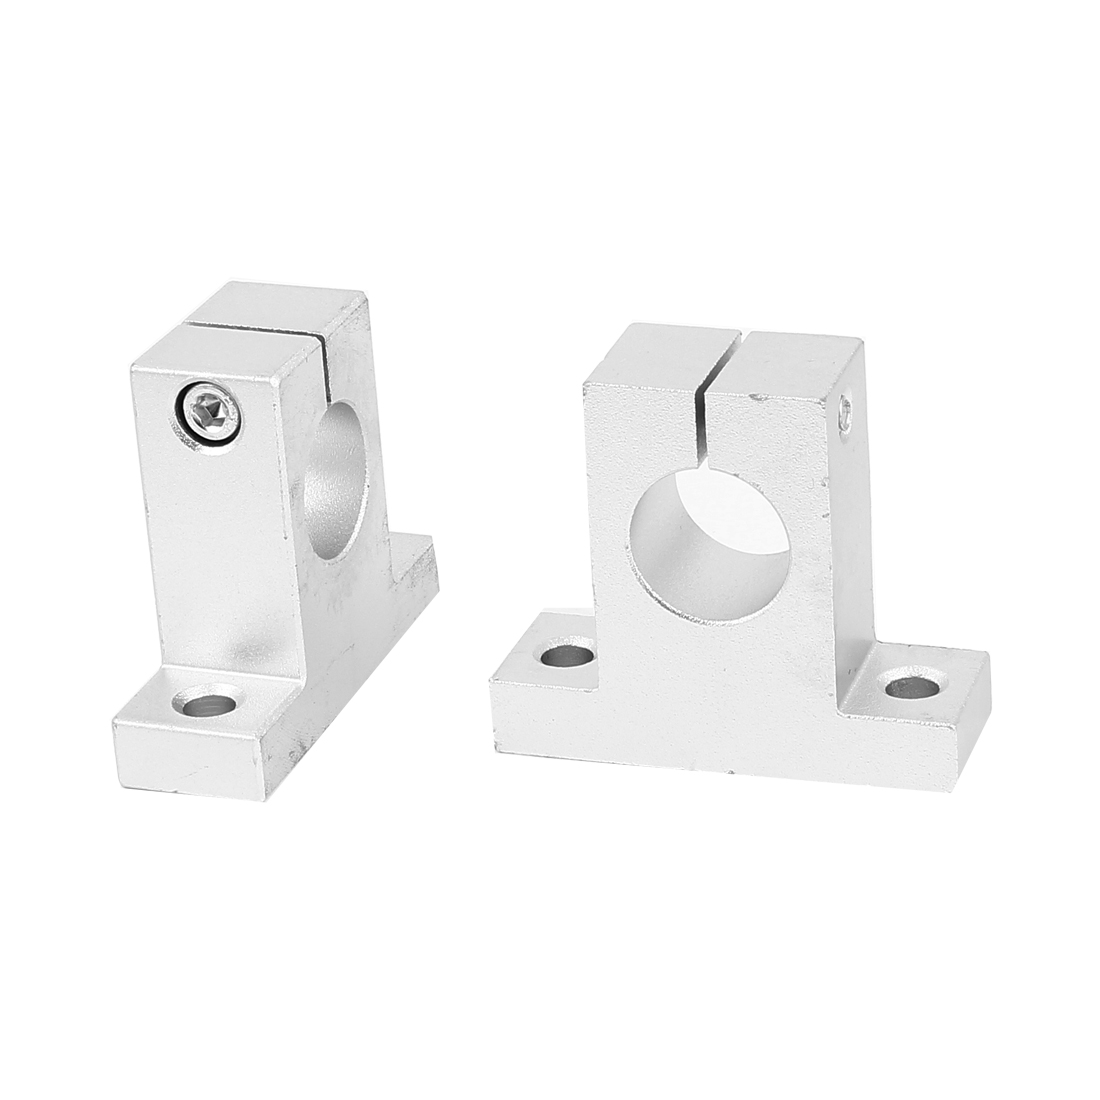 2pcs SK20 20mm Dia Hole Linear Rail Shaft Clamping Guide Support for Milling Machine